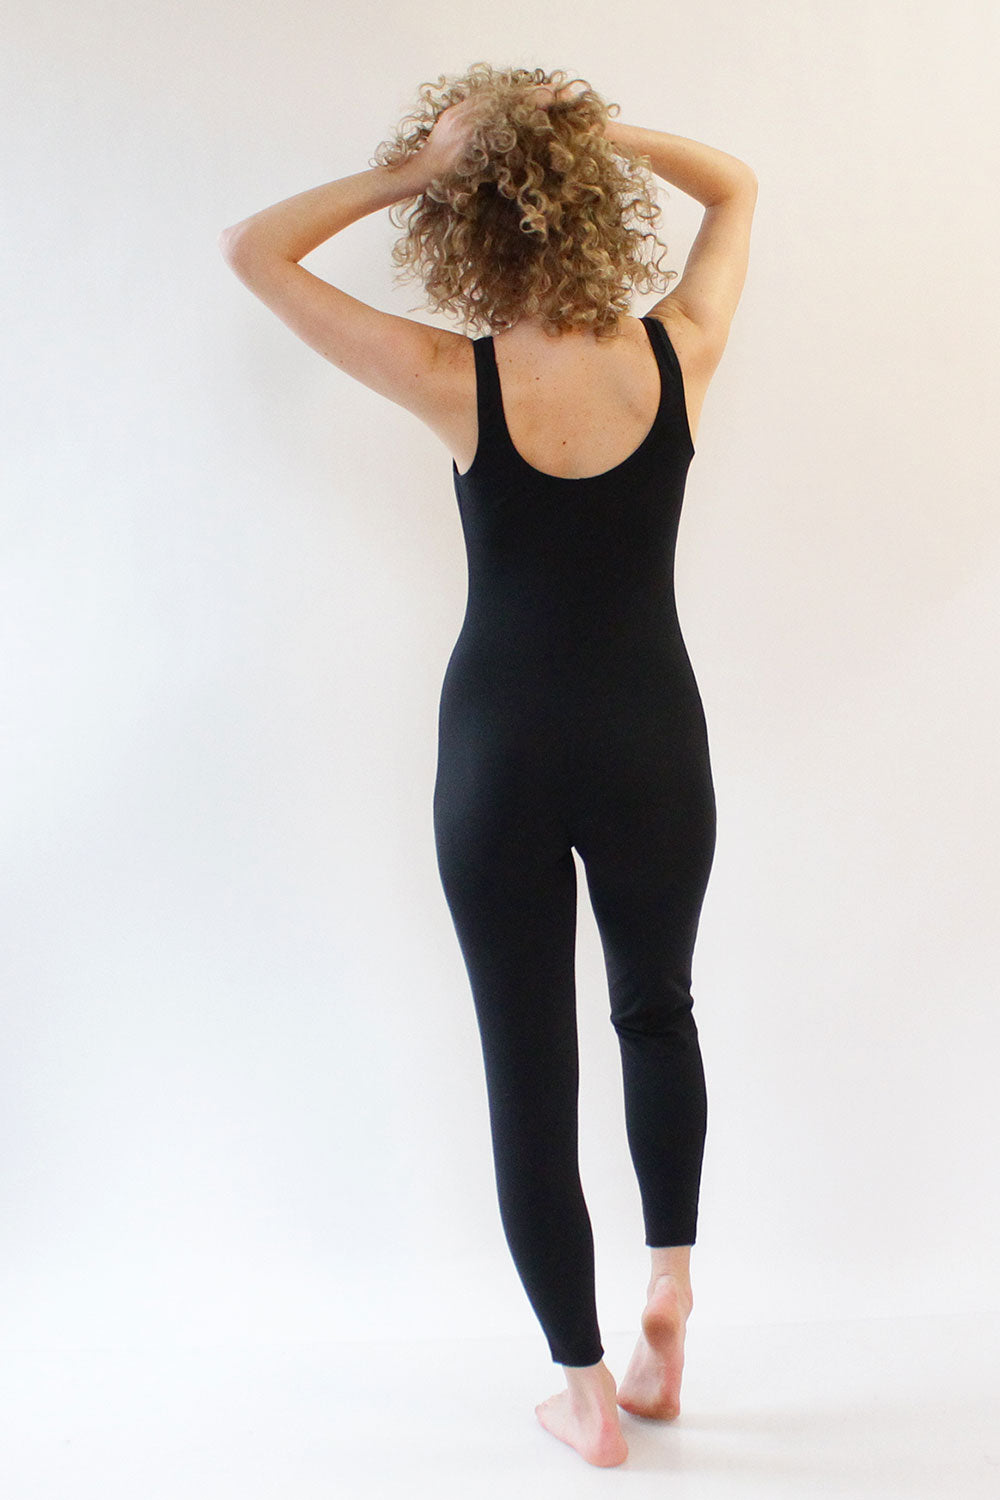 Jacques Black Catsuit S/M